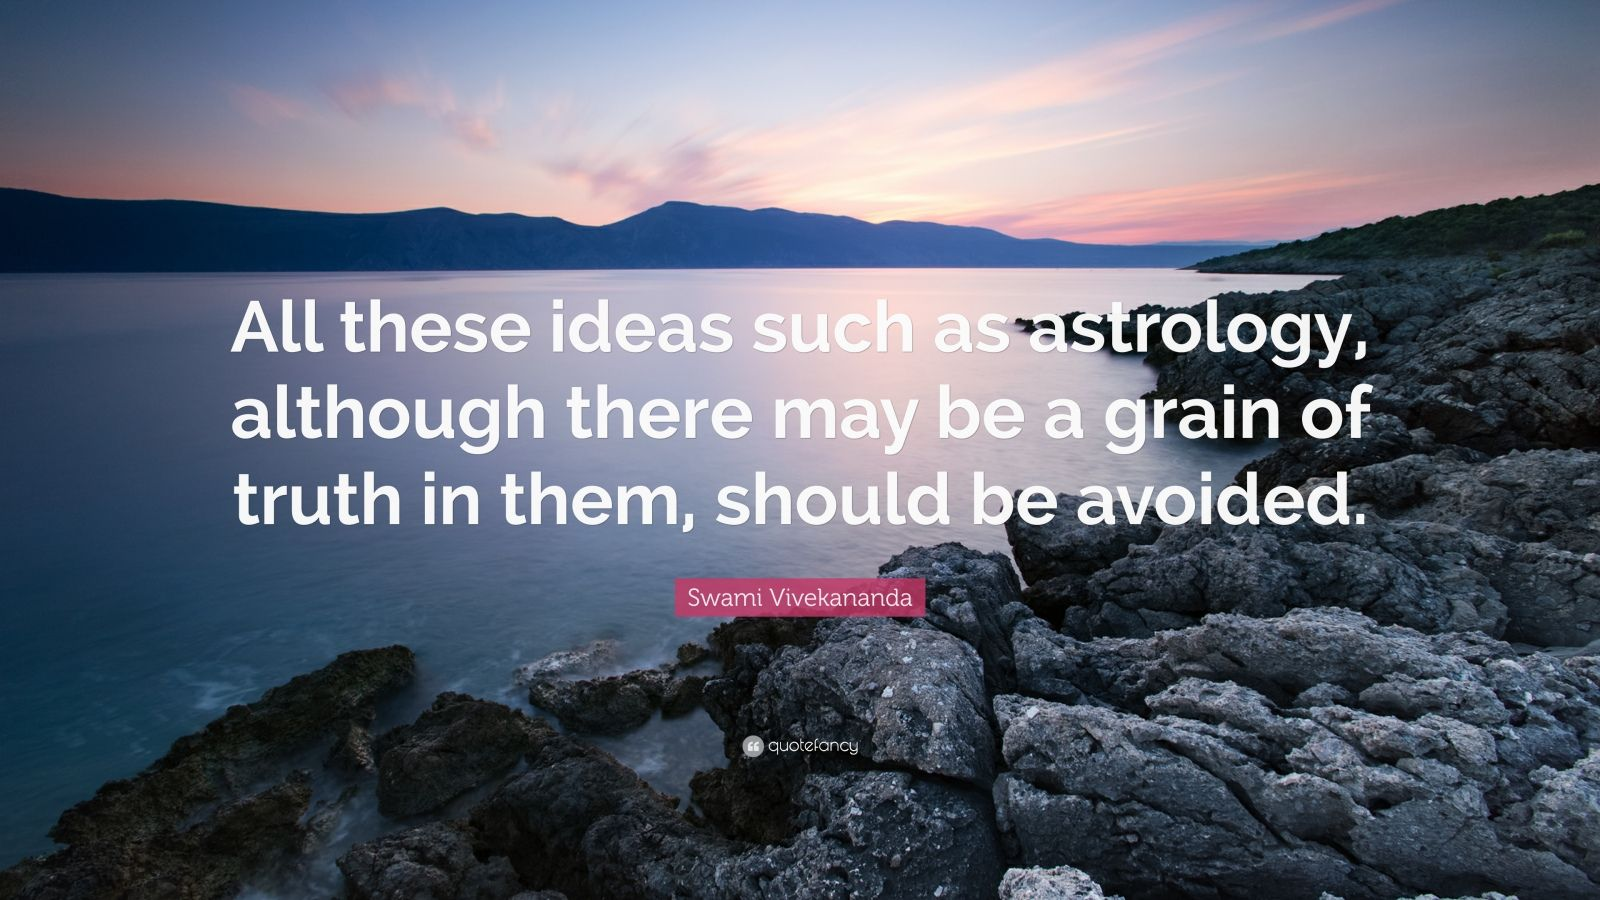 """Swami Vivekananda Quote: """"All these ideas such as astrology, although there may be a grain of truth in them, should be avoided."""""""